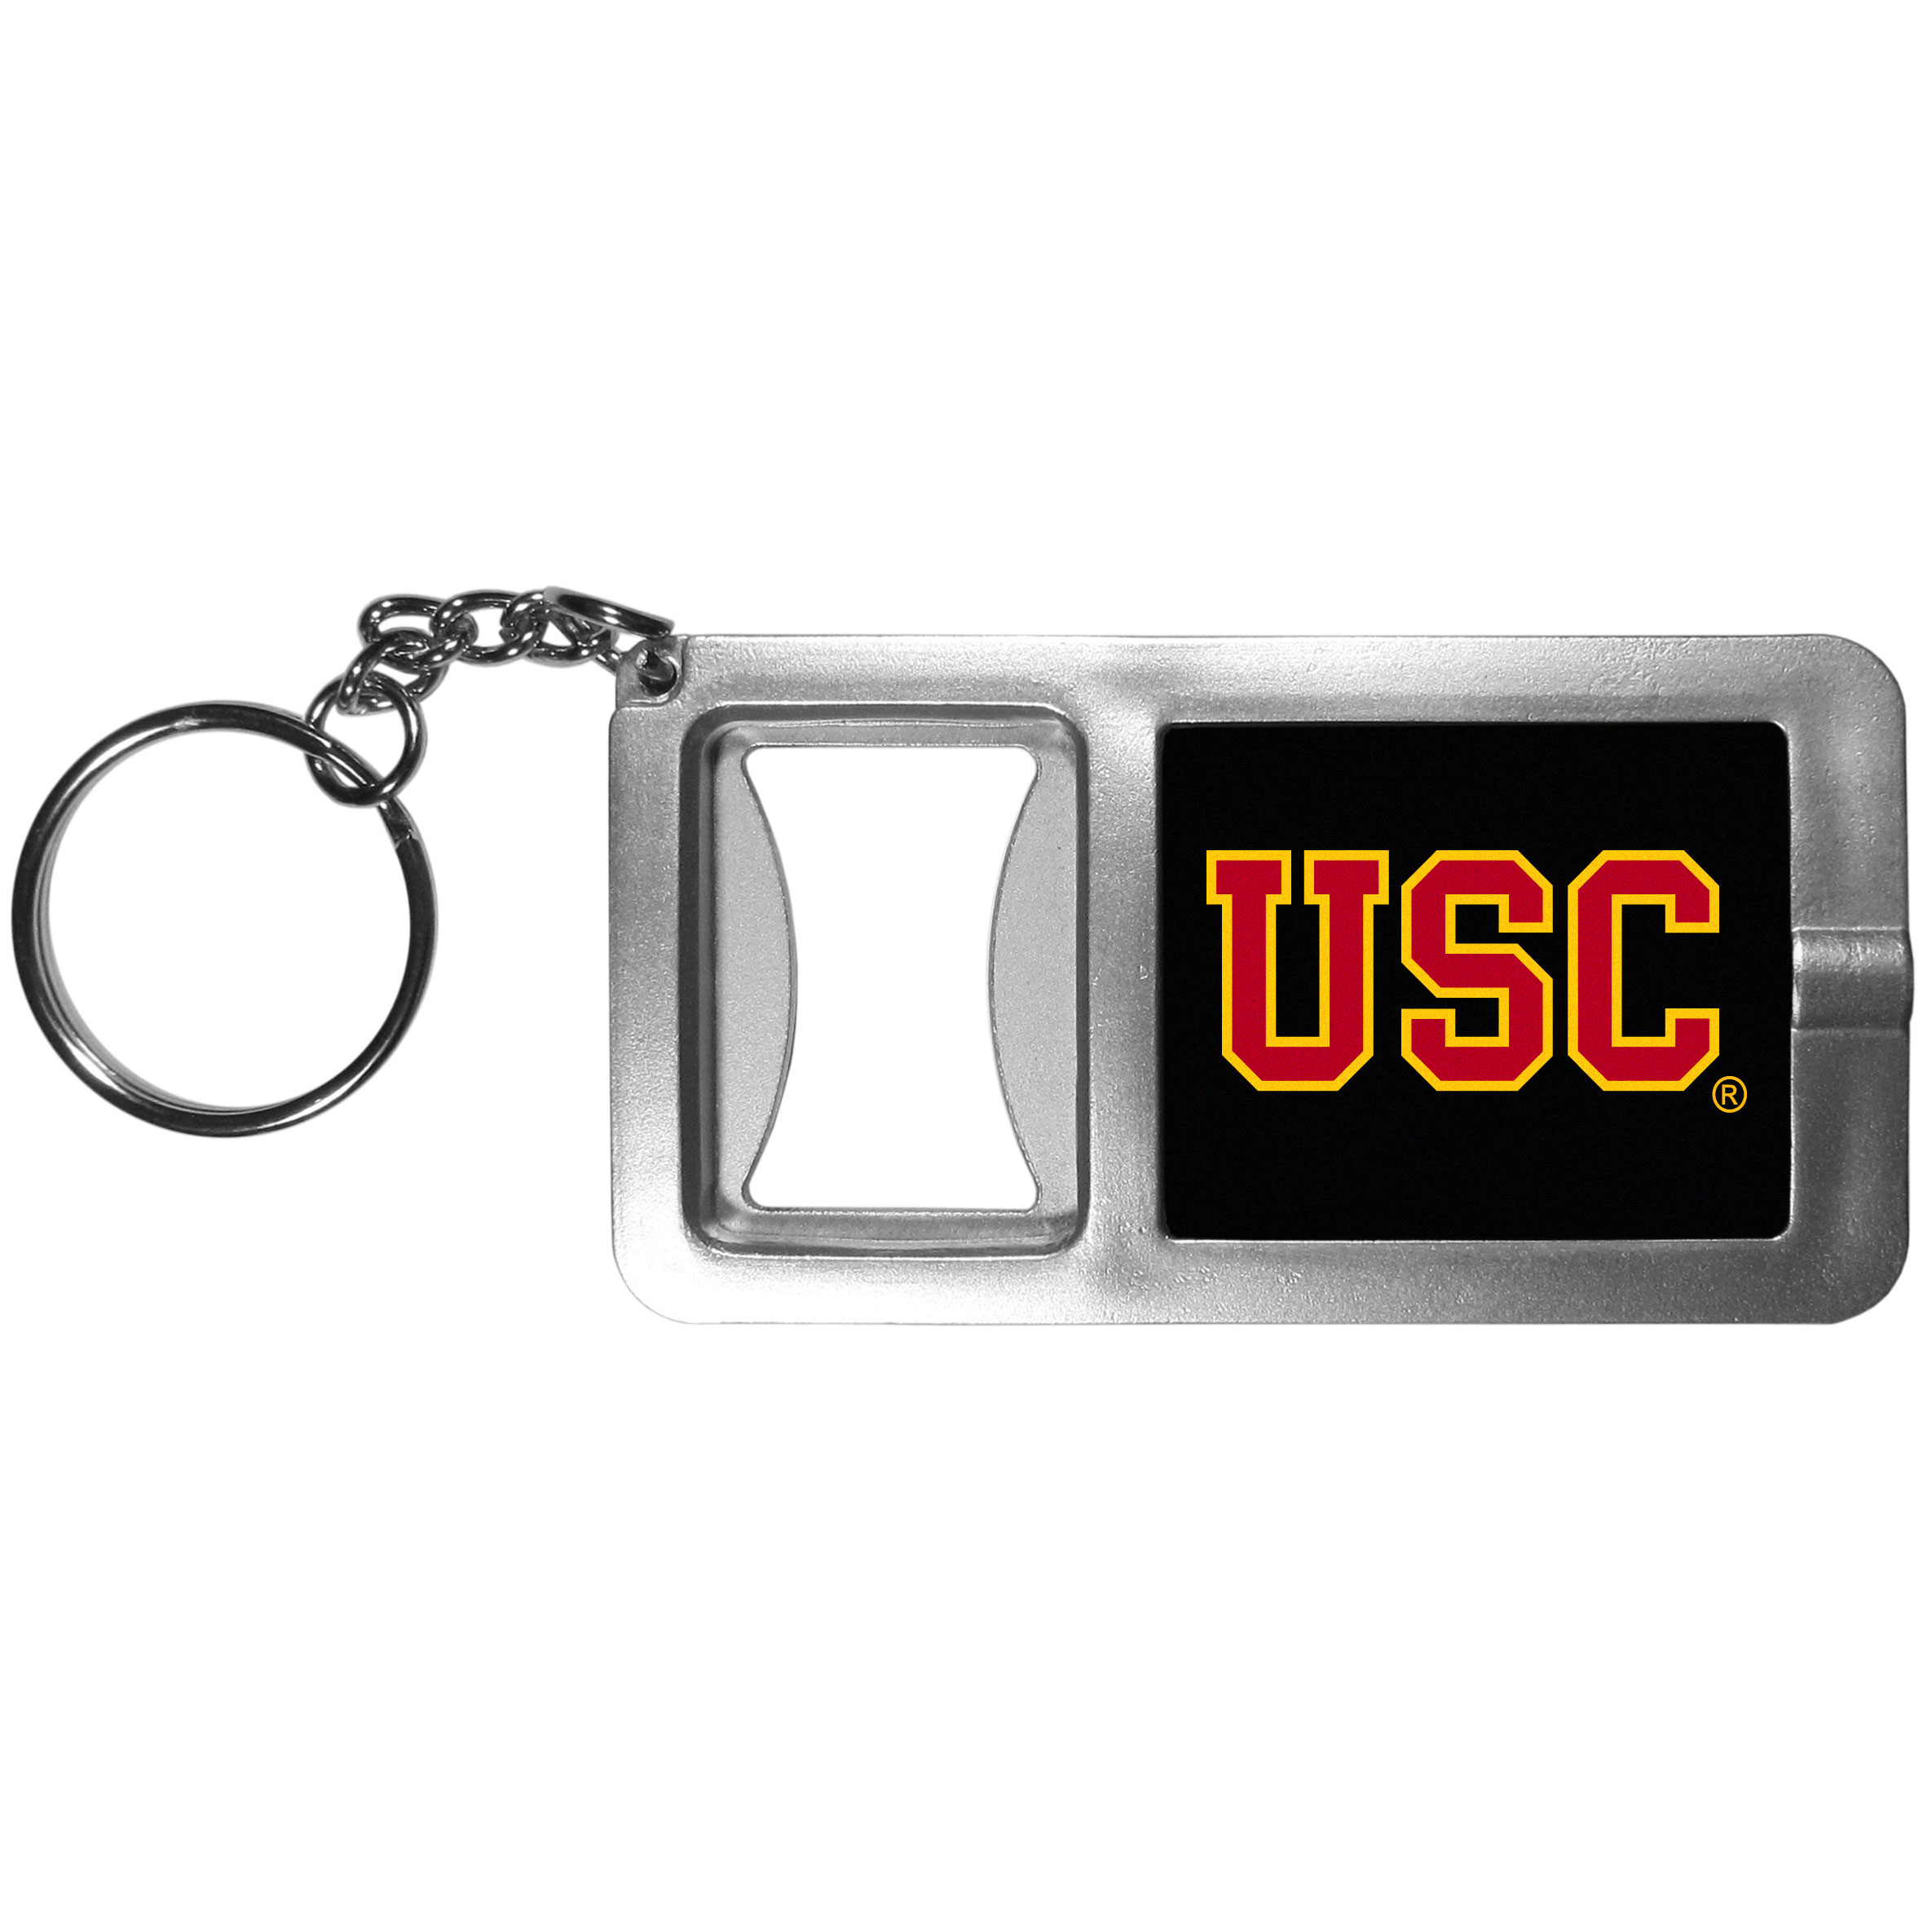 USC Trojans Flashlight Key Chain with Bottle Opener - Never be without light with our USC Trojans flashlight keychain that features a handy bottle opener feature. This versatile key chain is perfect for camping and travel and is a great way to show off your team pride!